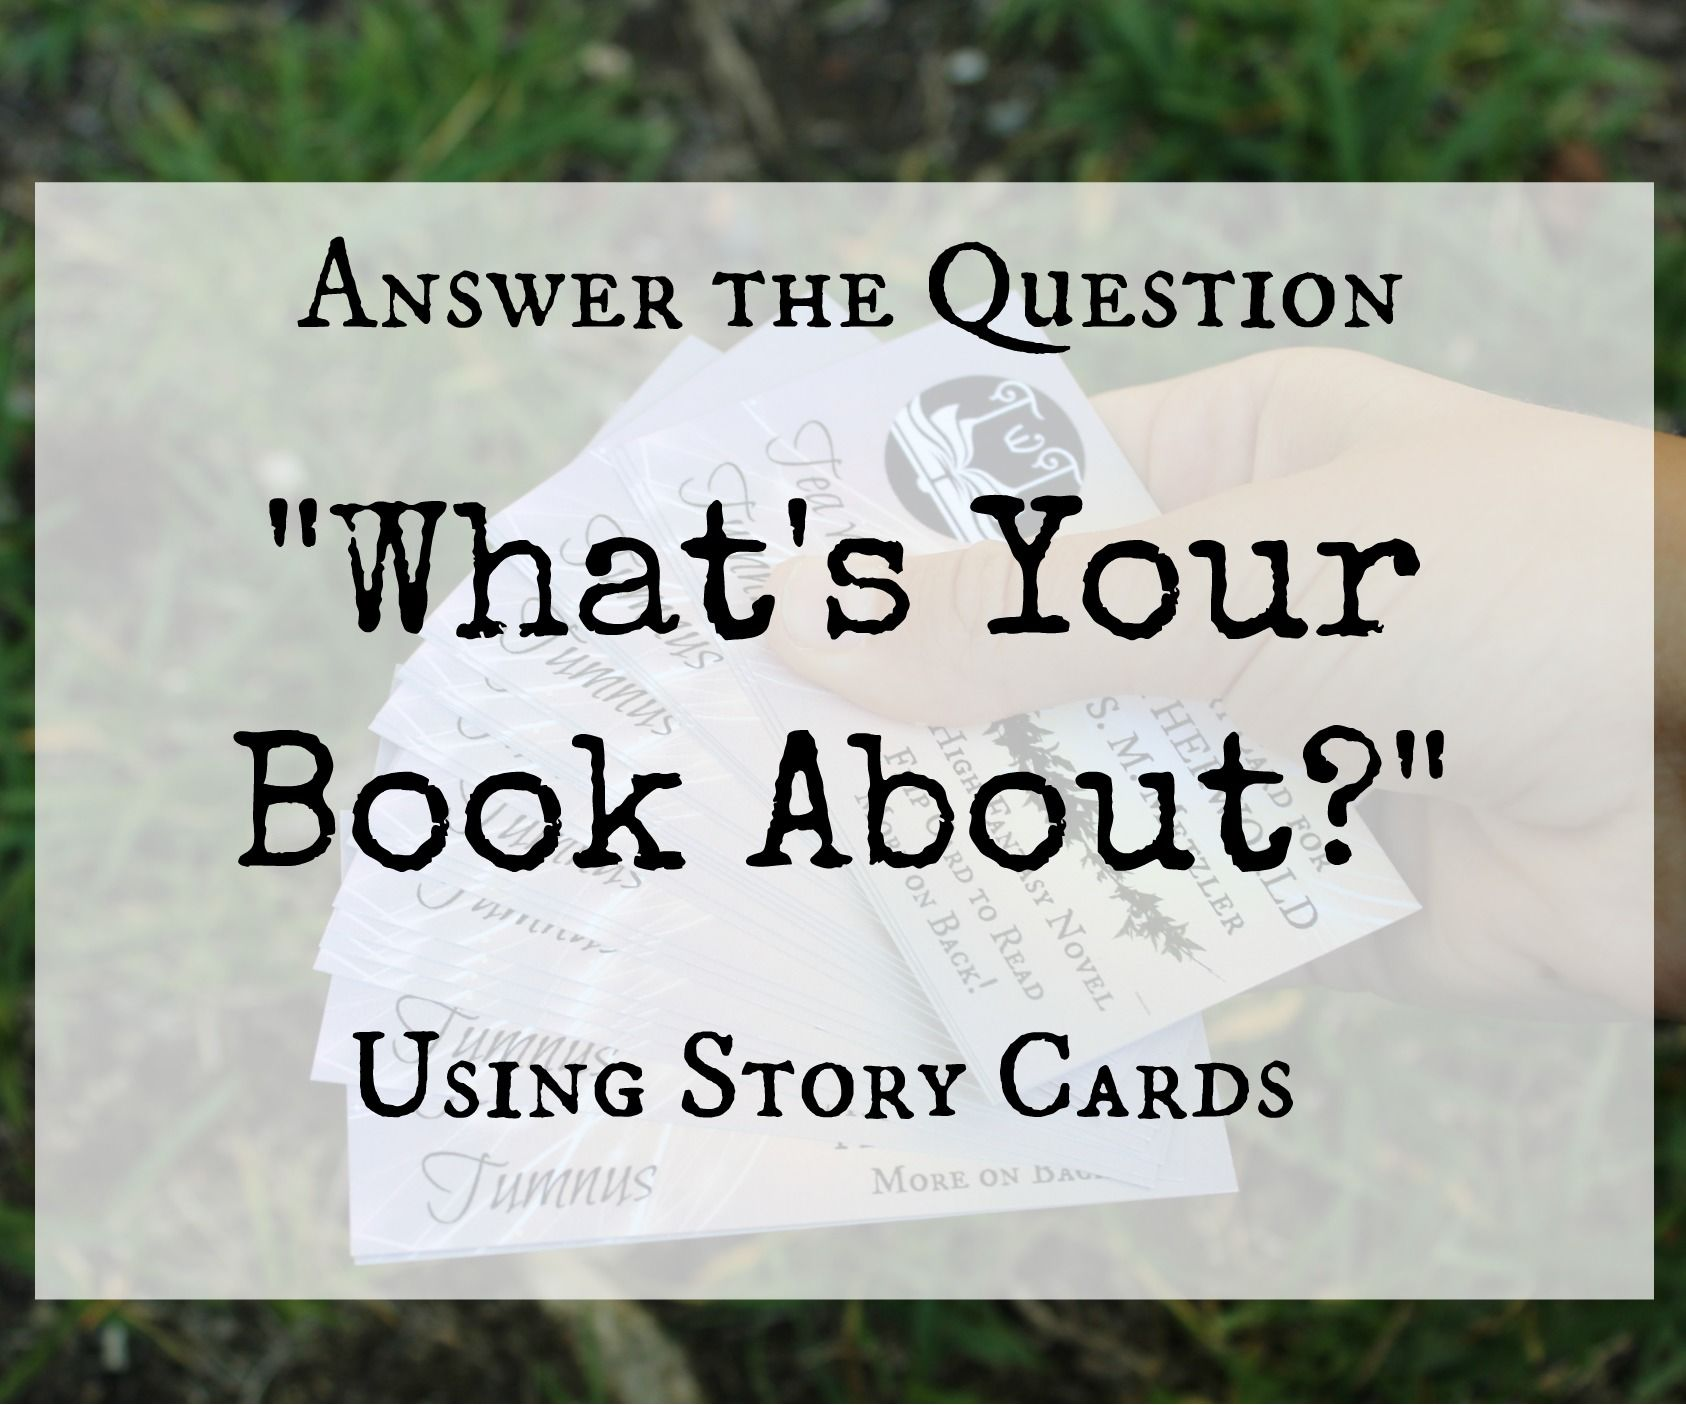 """Use Story Cards to Answer the Question """"What's Your Story About?"""""""